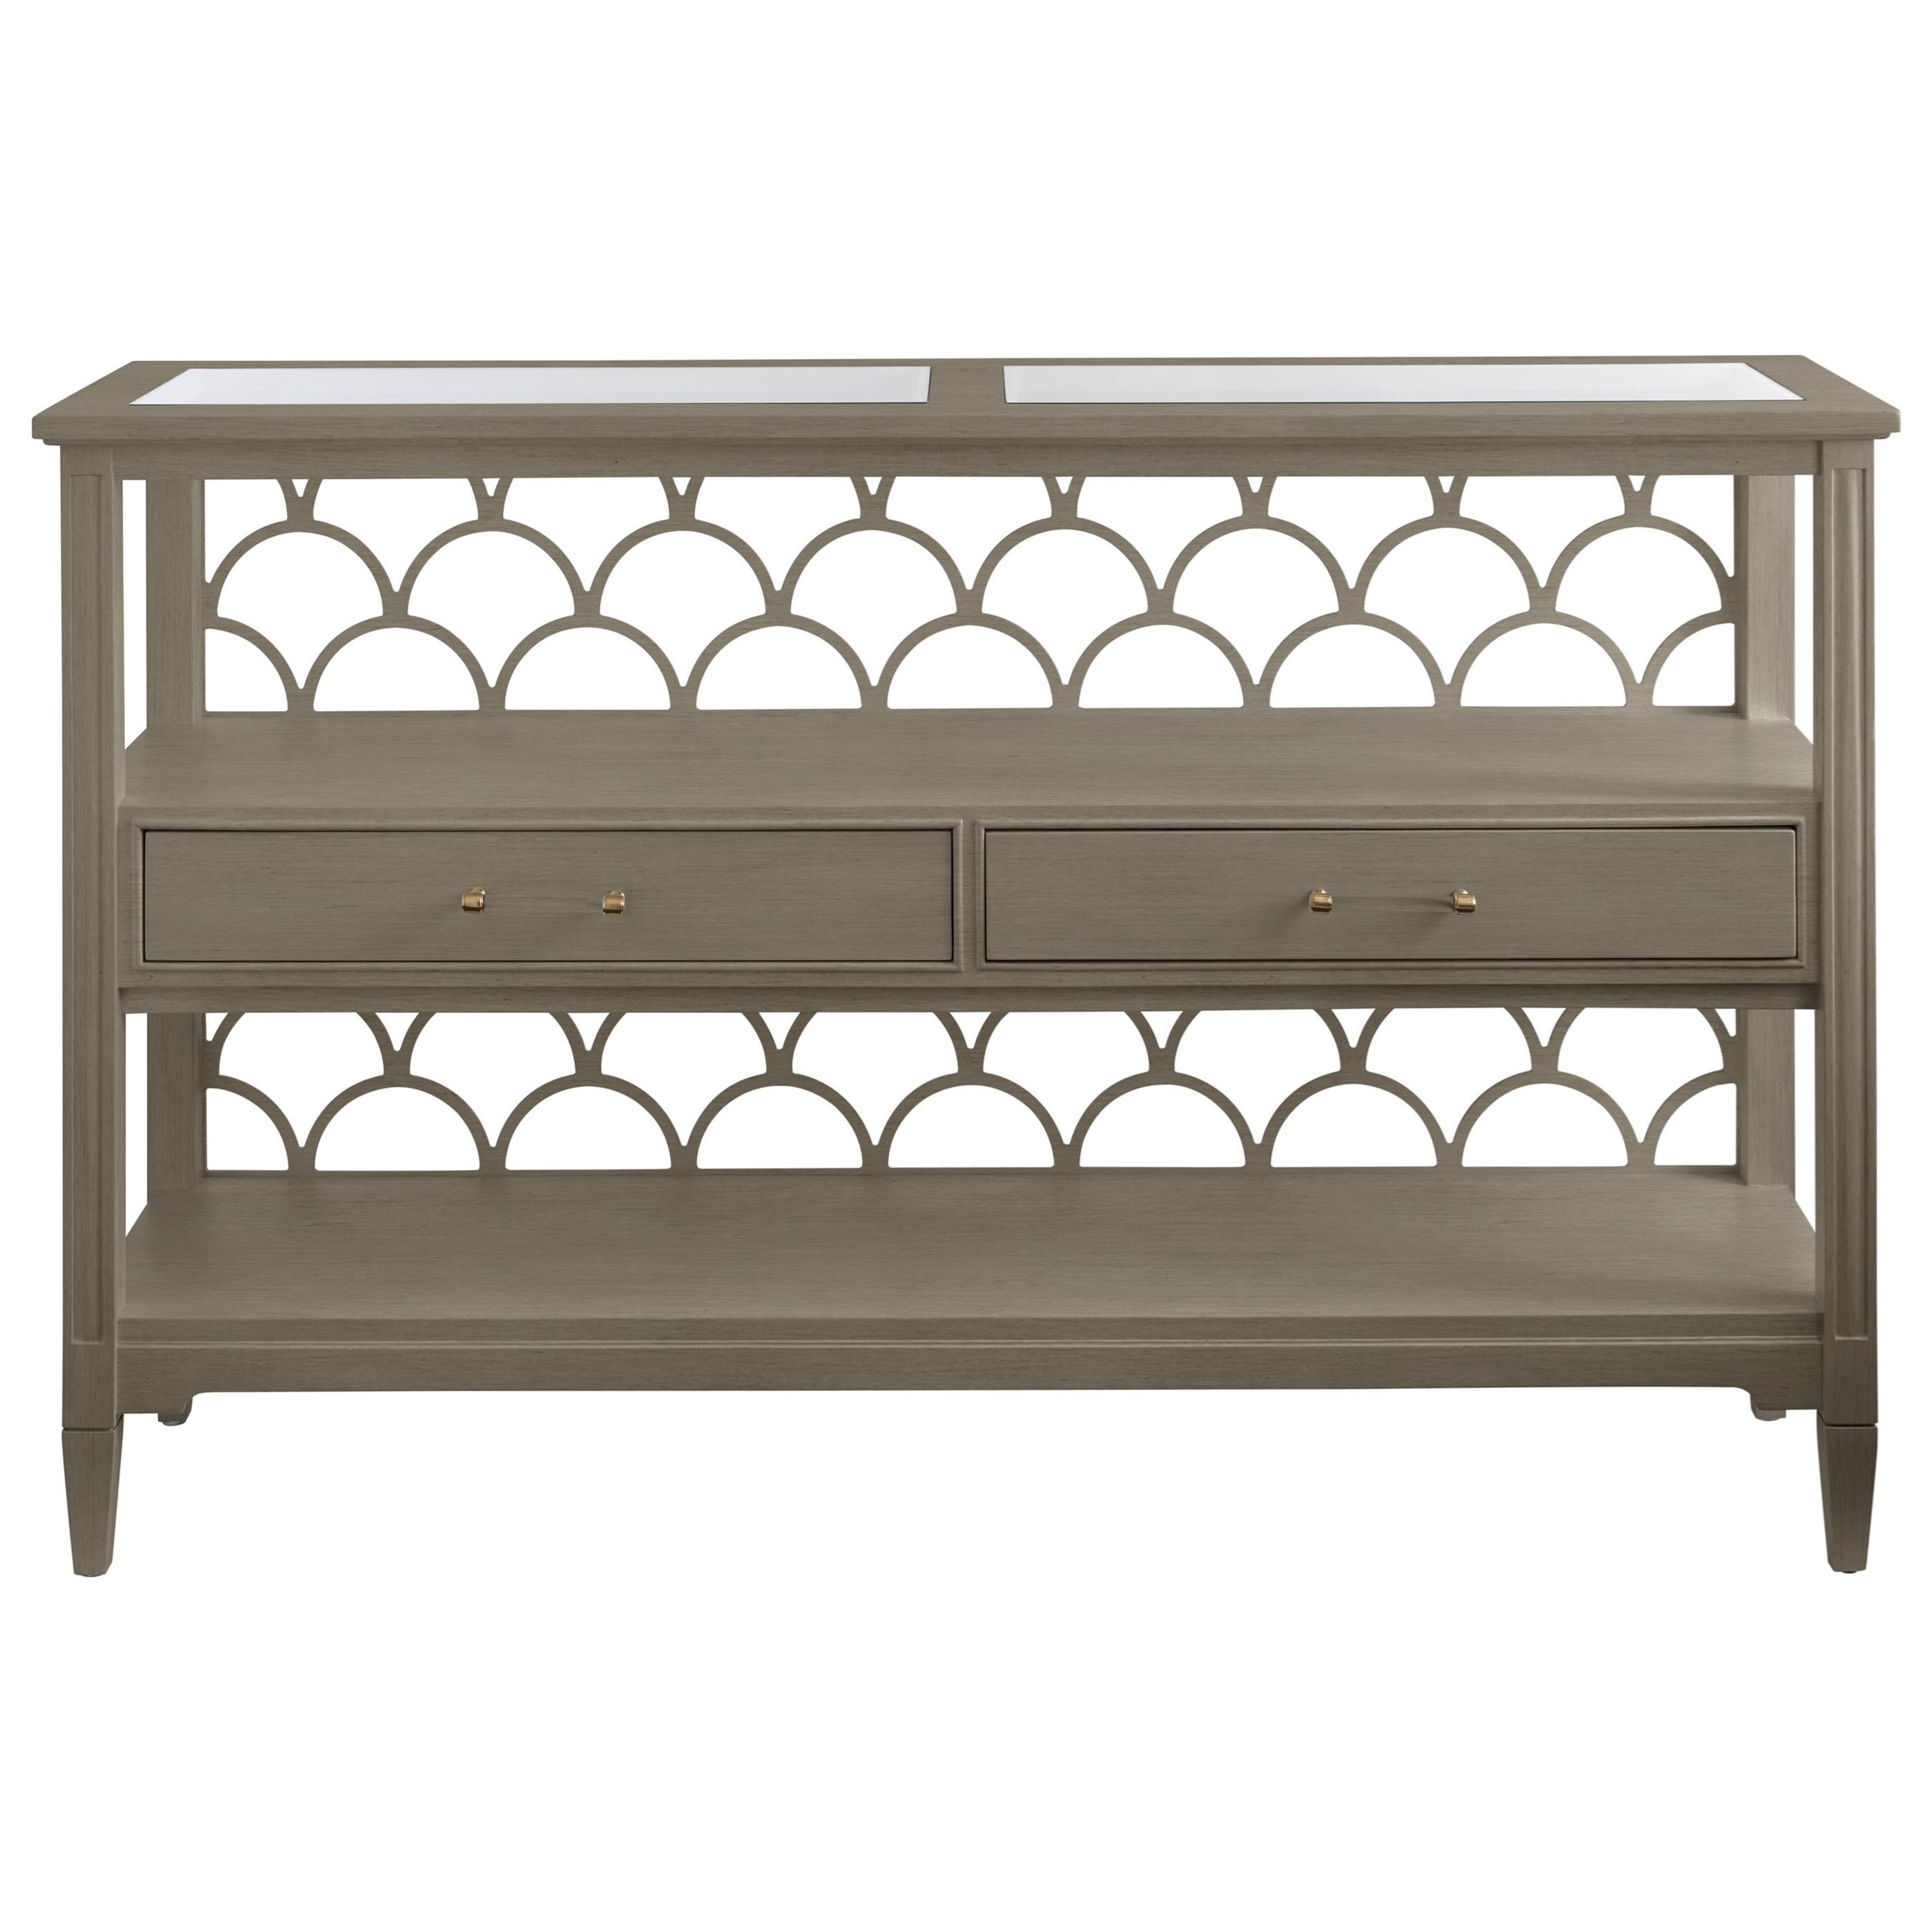 Stanley furniture coastal living oasis 527 65 05 sea cloud for Stanley furniture